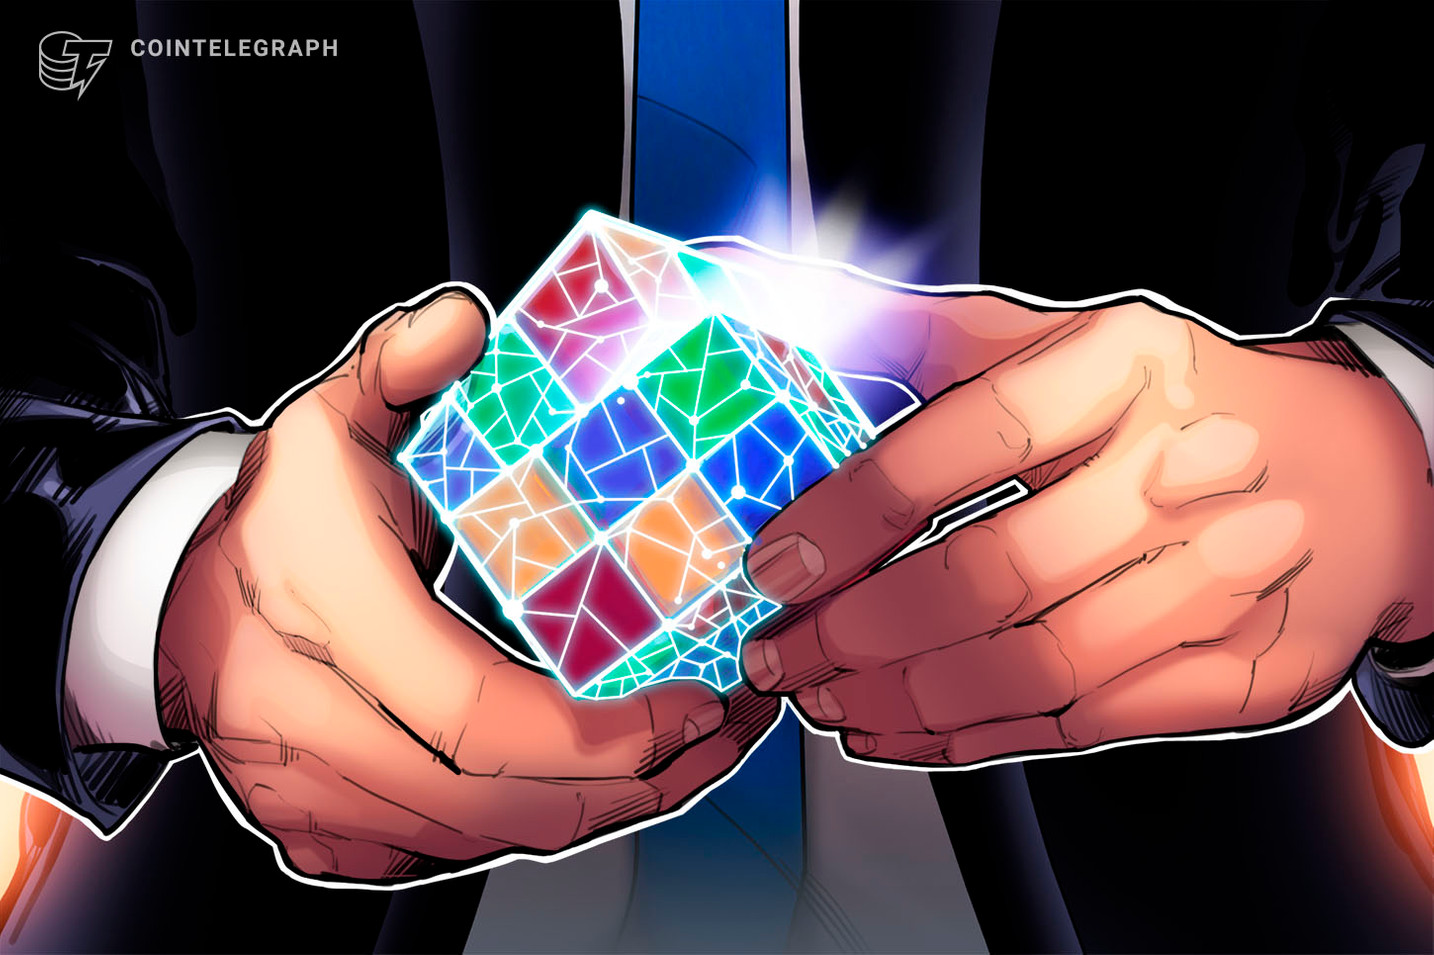 Swiss Executive Branch Calls for Improved Regulations for Blockchain